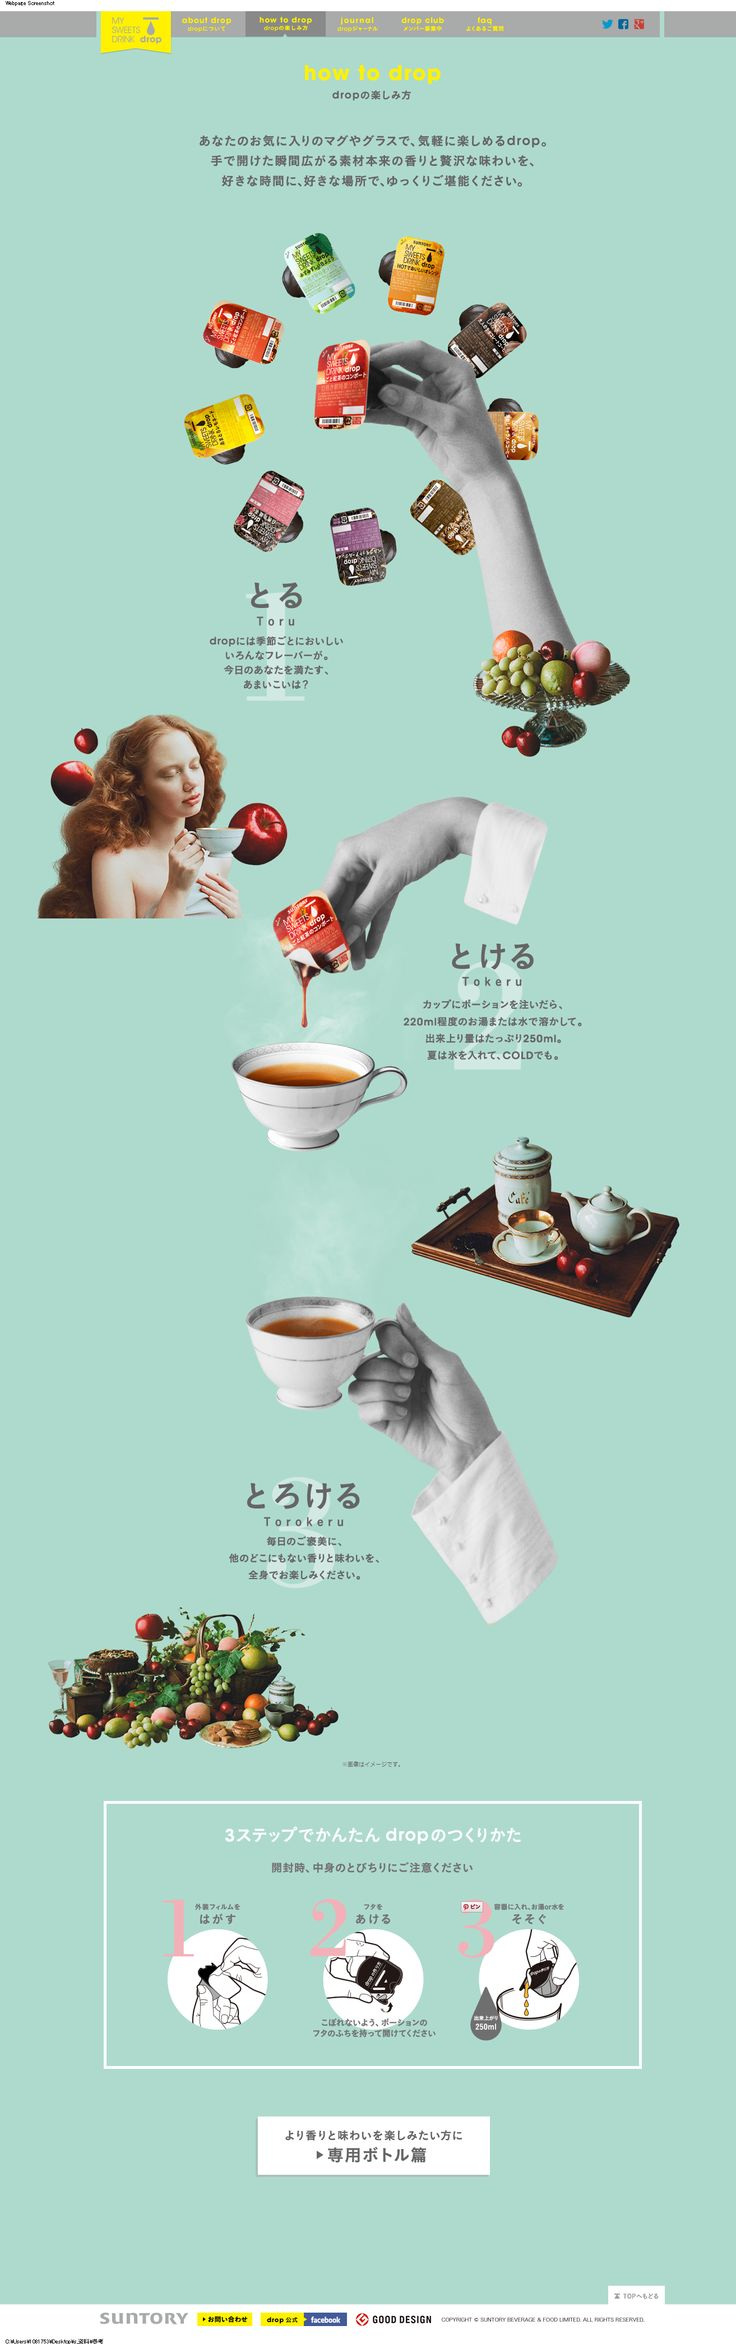 http://www.suntory.co.jp/softdrink/drop/howto/ MY SWEETS DRINK drop|サントリー